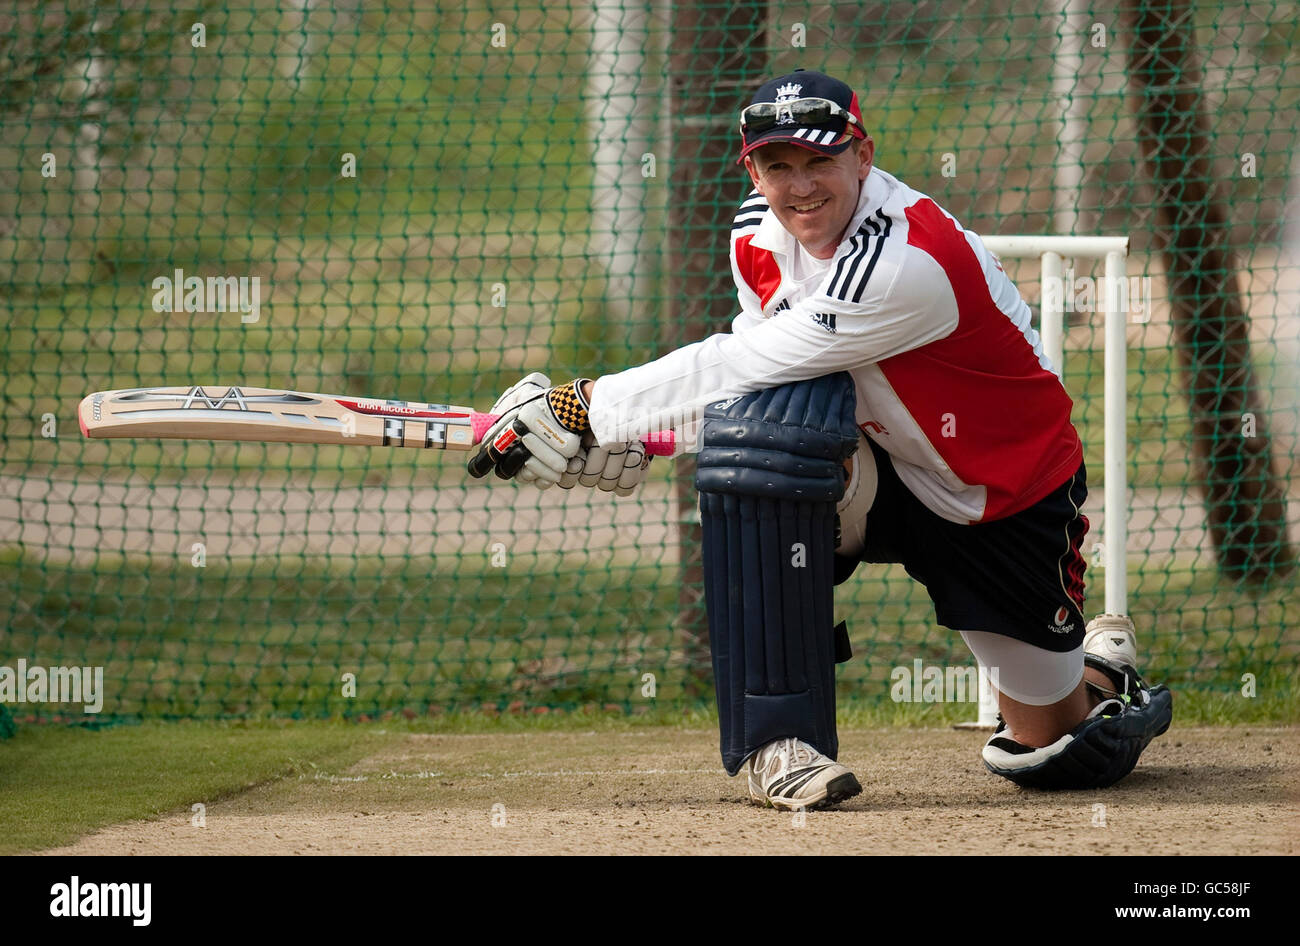 Cricket - England Nets Session - De Beers Diamond Oval - Stock Image